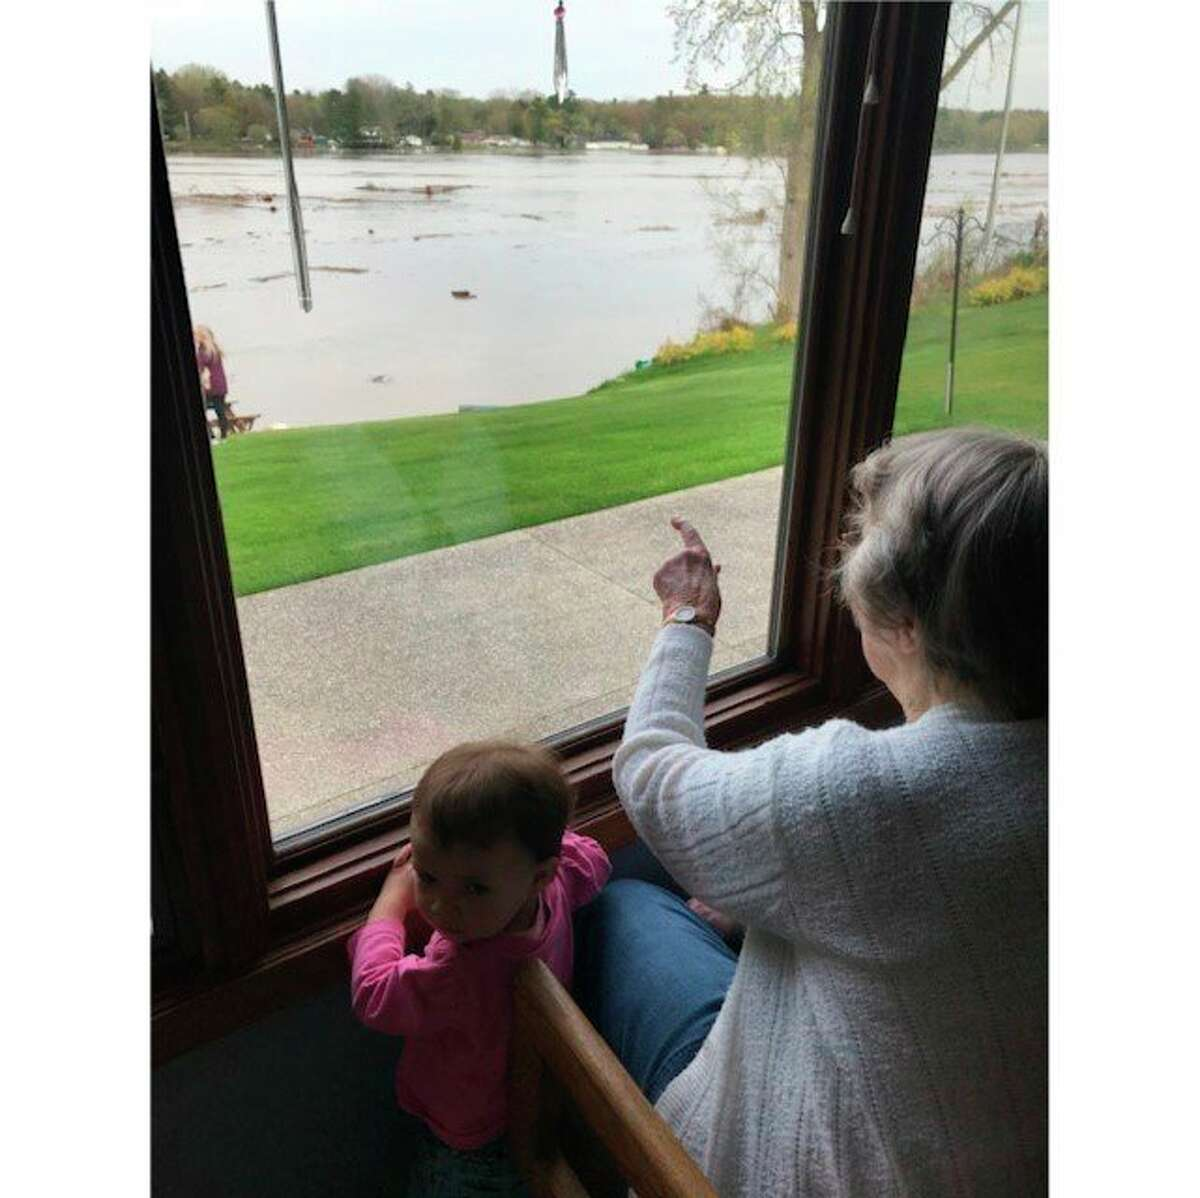 Florence Smith and great-granddaughter Joslyn Smith watch from the window of the home of Bill and Corrine Smith on Sanford Lake during the May 2020 flood. (Photo provided)